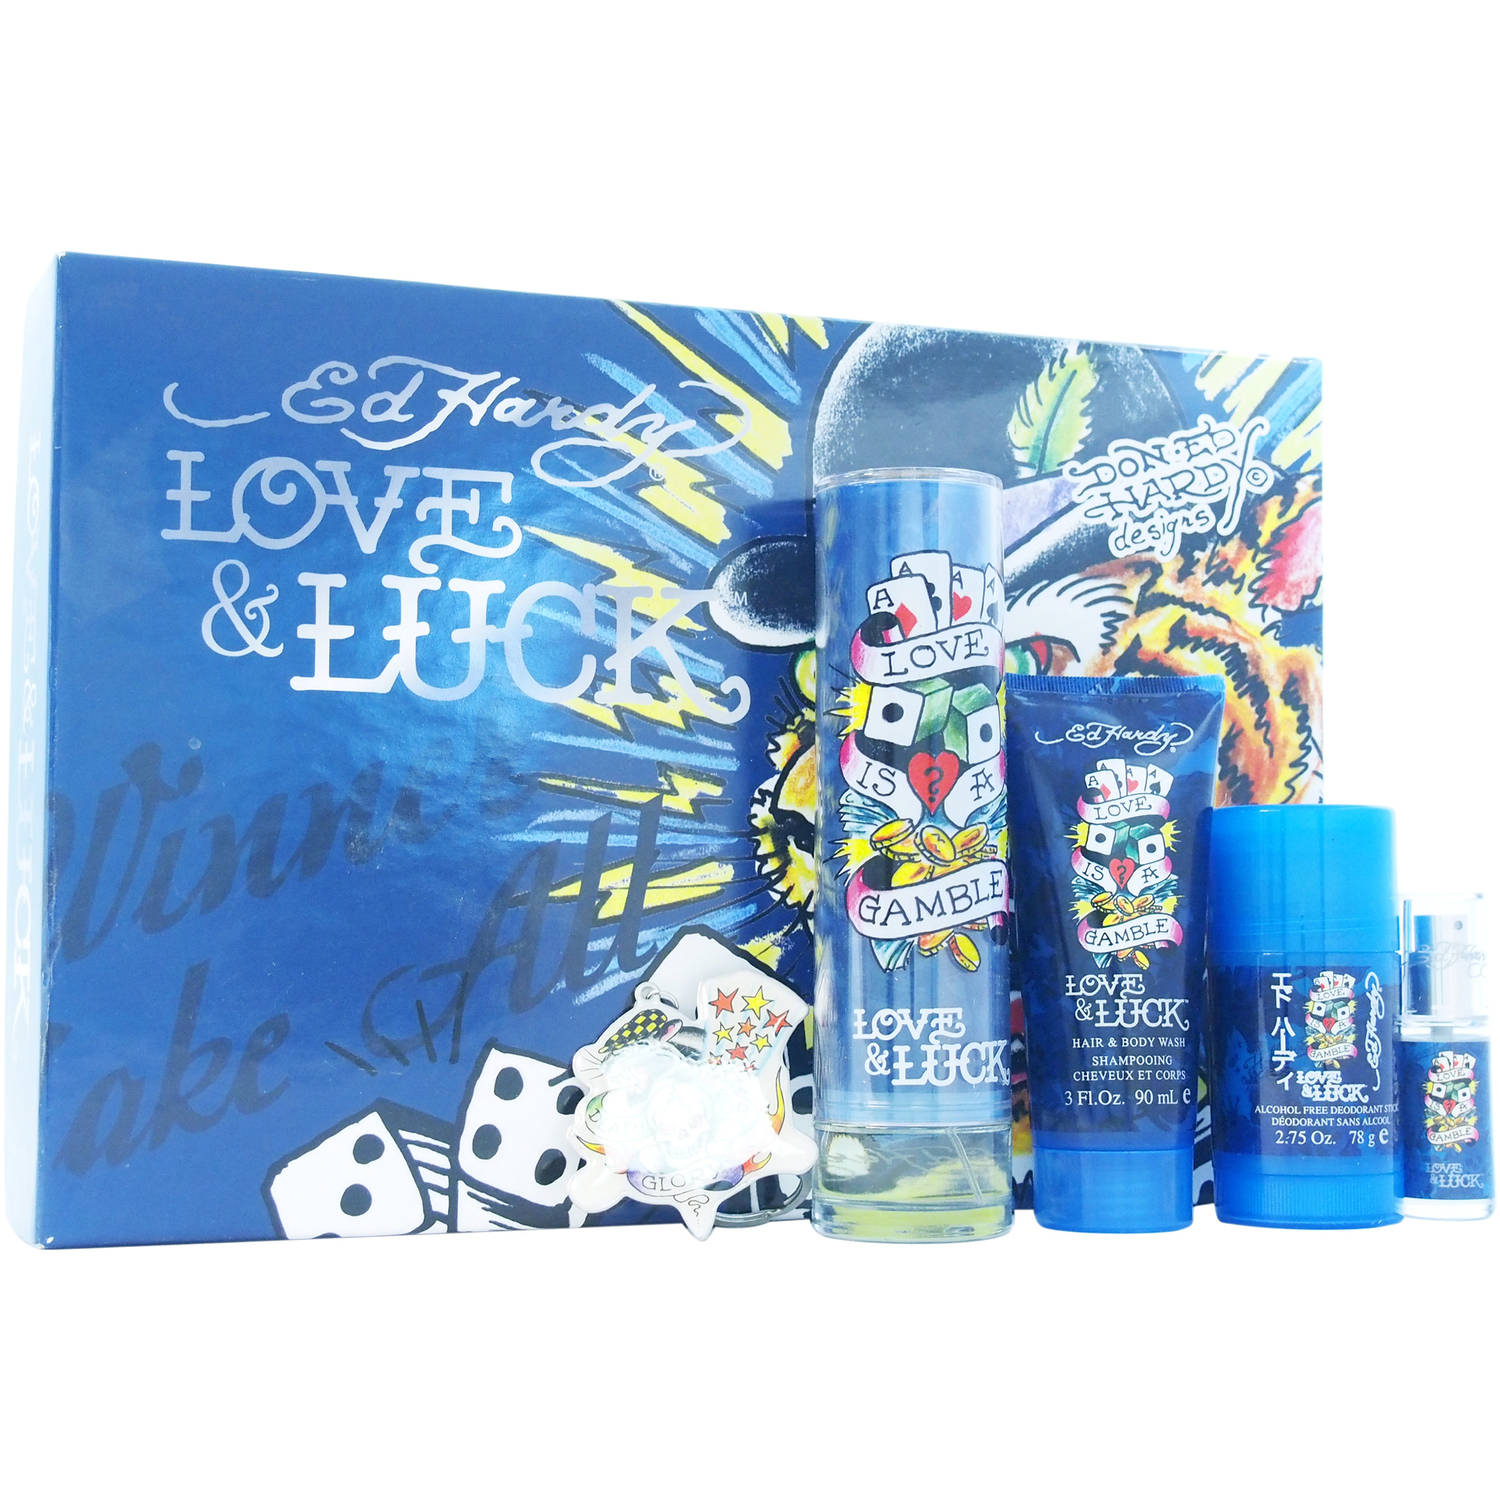 Christian Audigier Love & Luck Gift Set -- 3.4 oz Eau De Toilette Spray + 3 oz Hair & Body Wash + 2.75 oz Deodorant Stick + .25 oz Mini EDT Spray + Tatoo Design Key Chain For Men